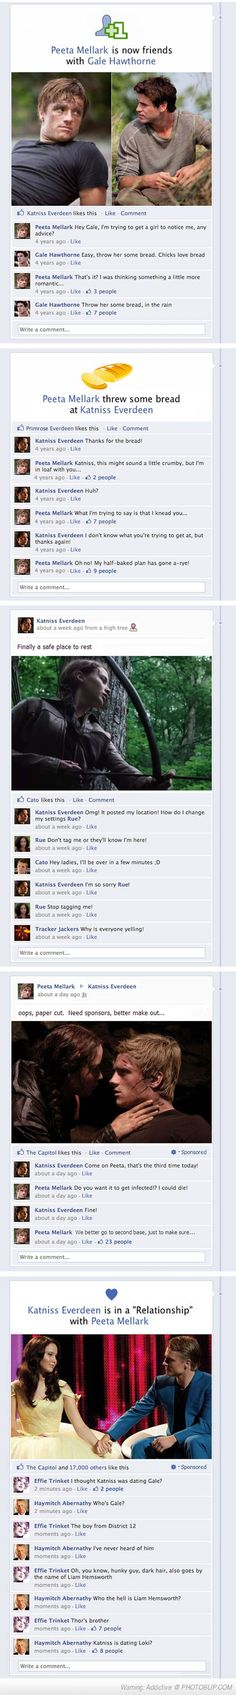 Hahahaha Hunger Games On Facebook. Corny, but that last line is pretty hilarious. ;)